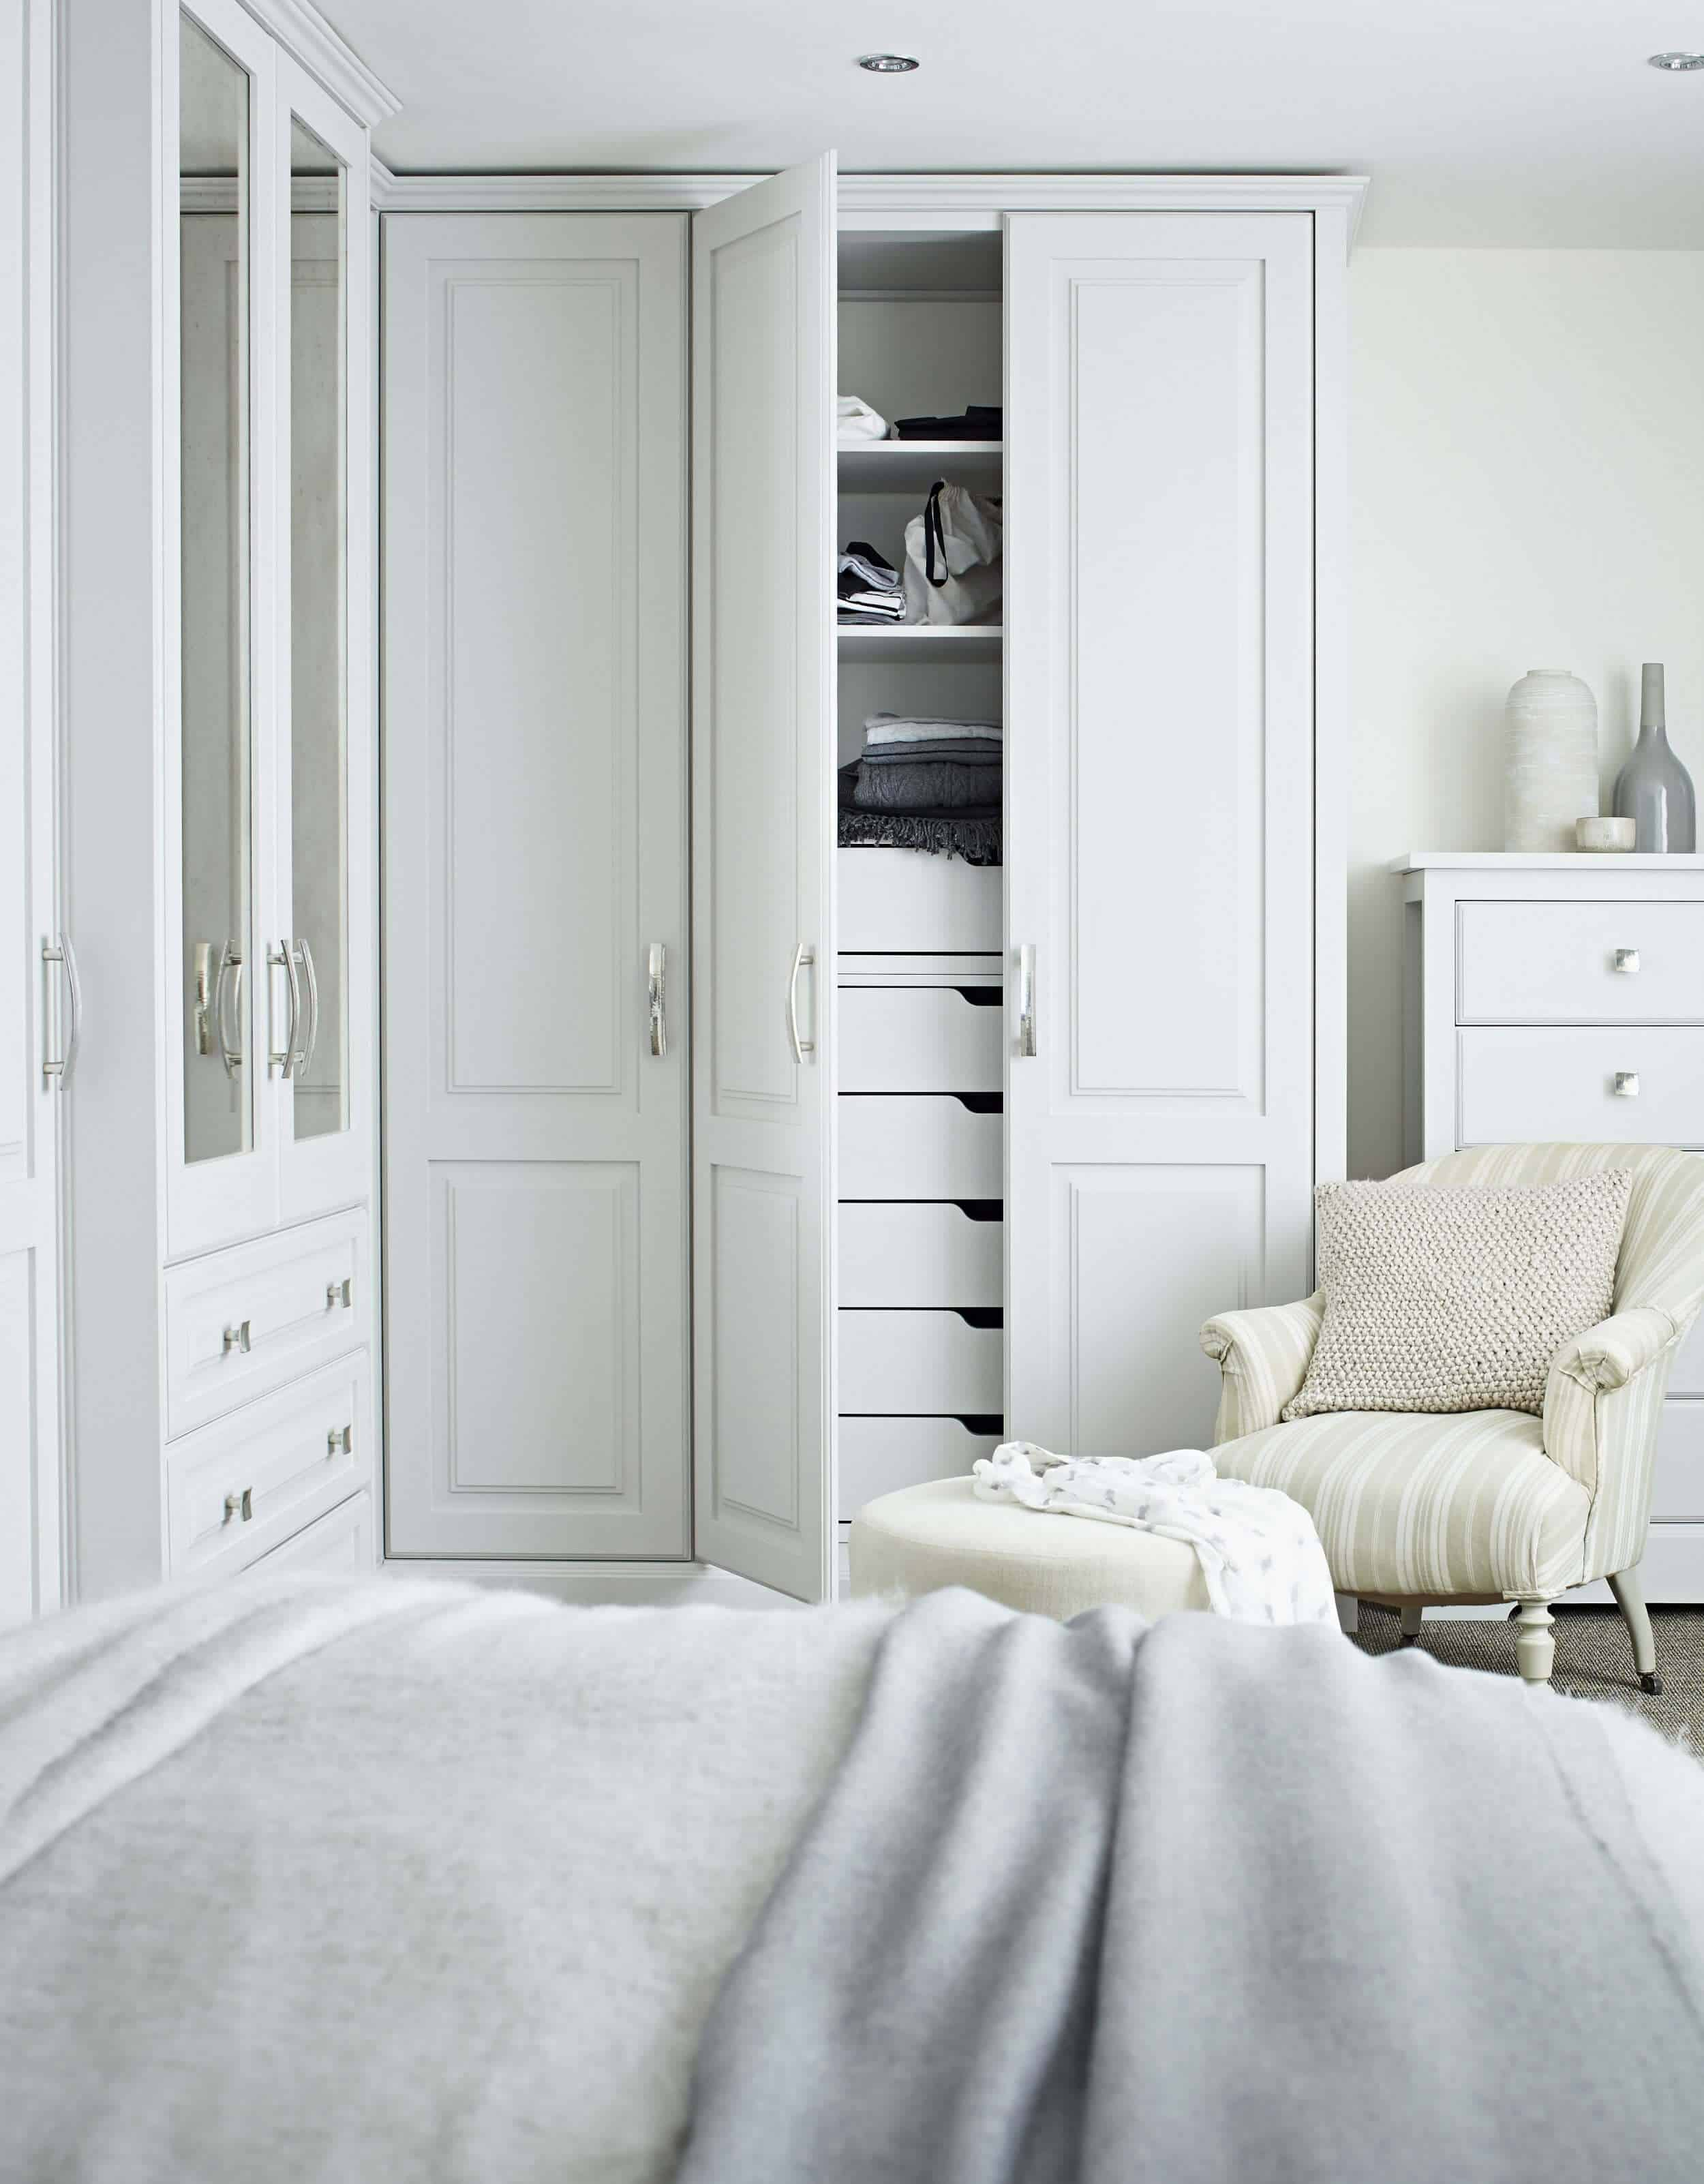 ea1e82ca111 Why fitted wardrobes are the perfect bedroom storage solution